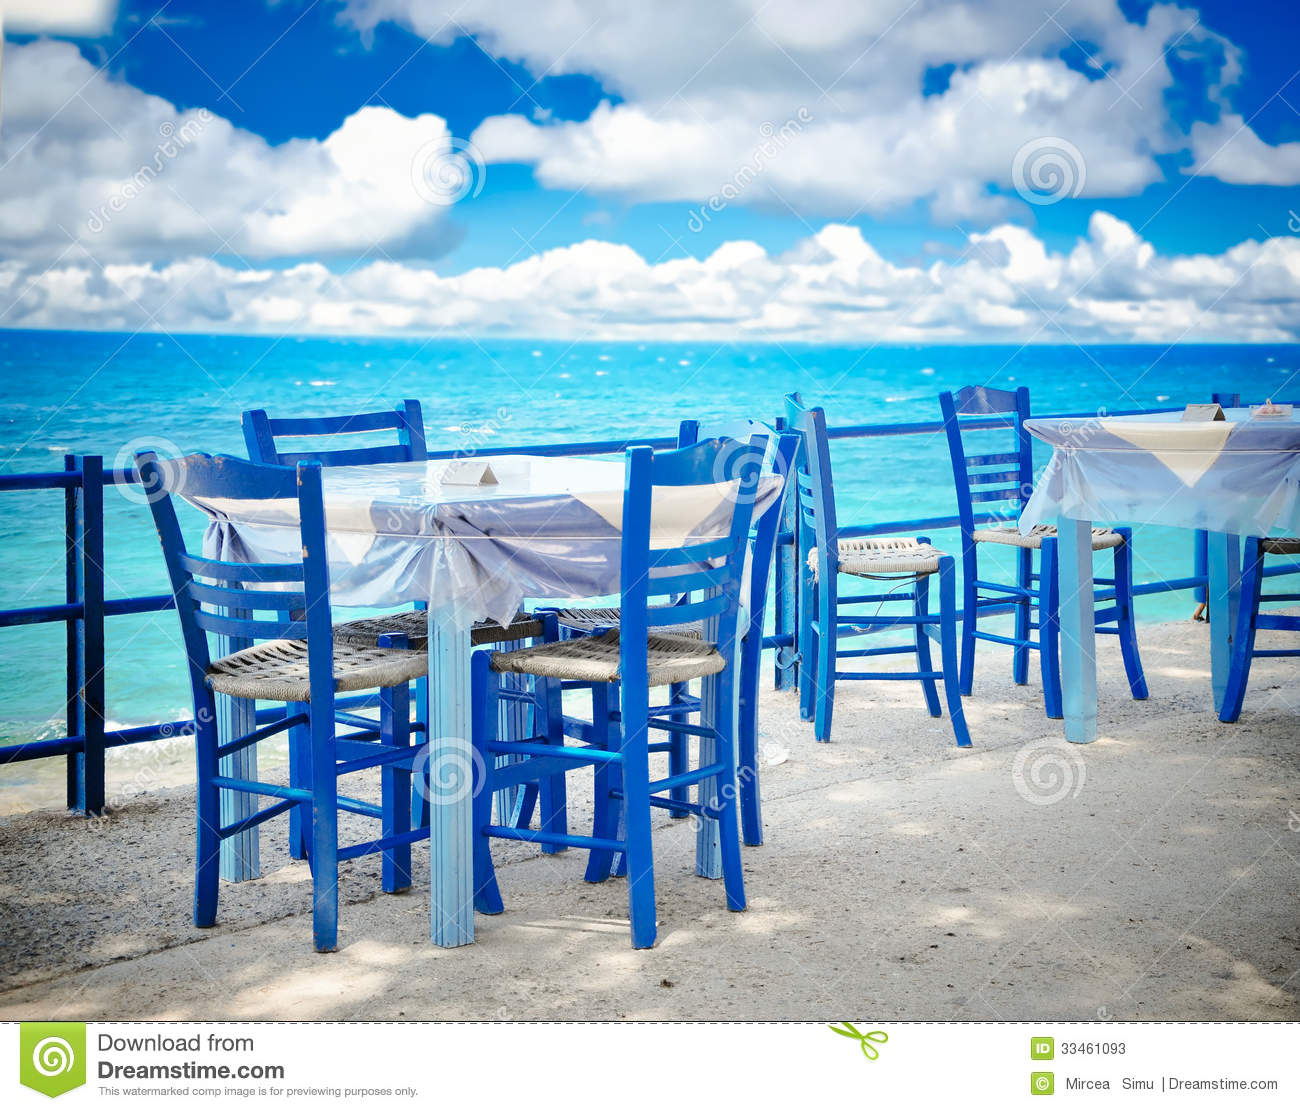 restaurant chairs for less office chair deals greek tavern stock image. image of crete, greece, food - 33461093